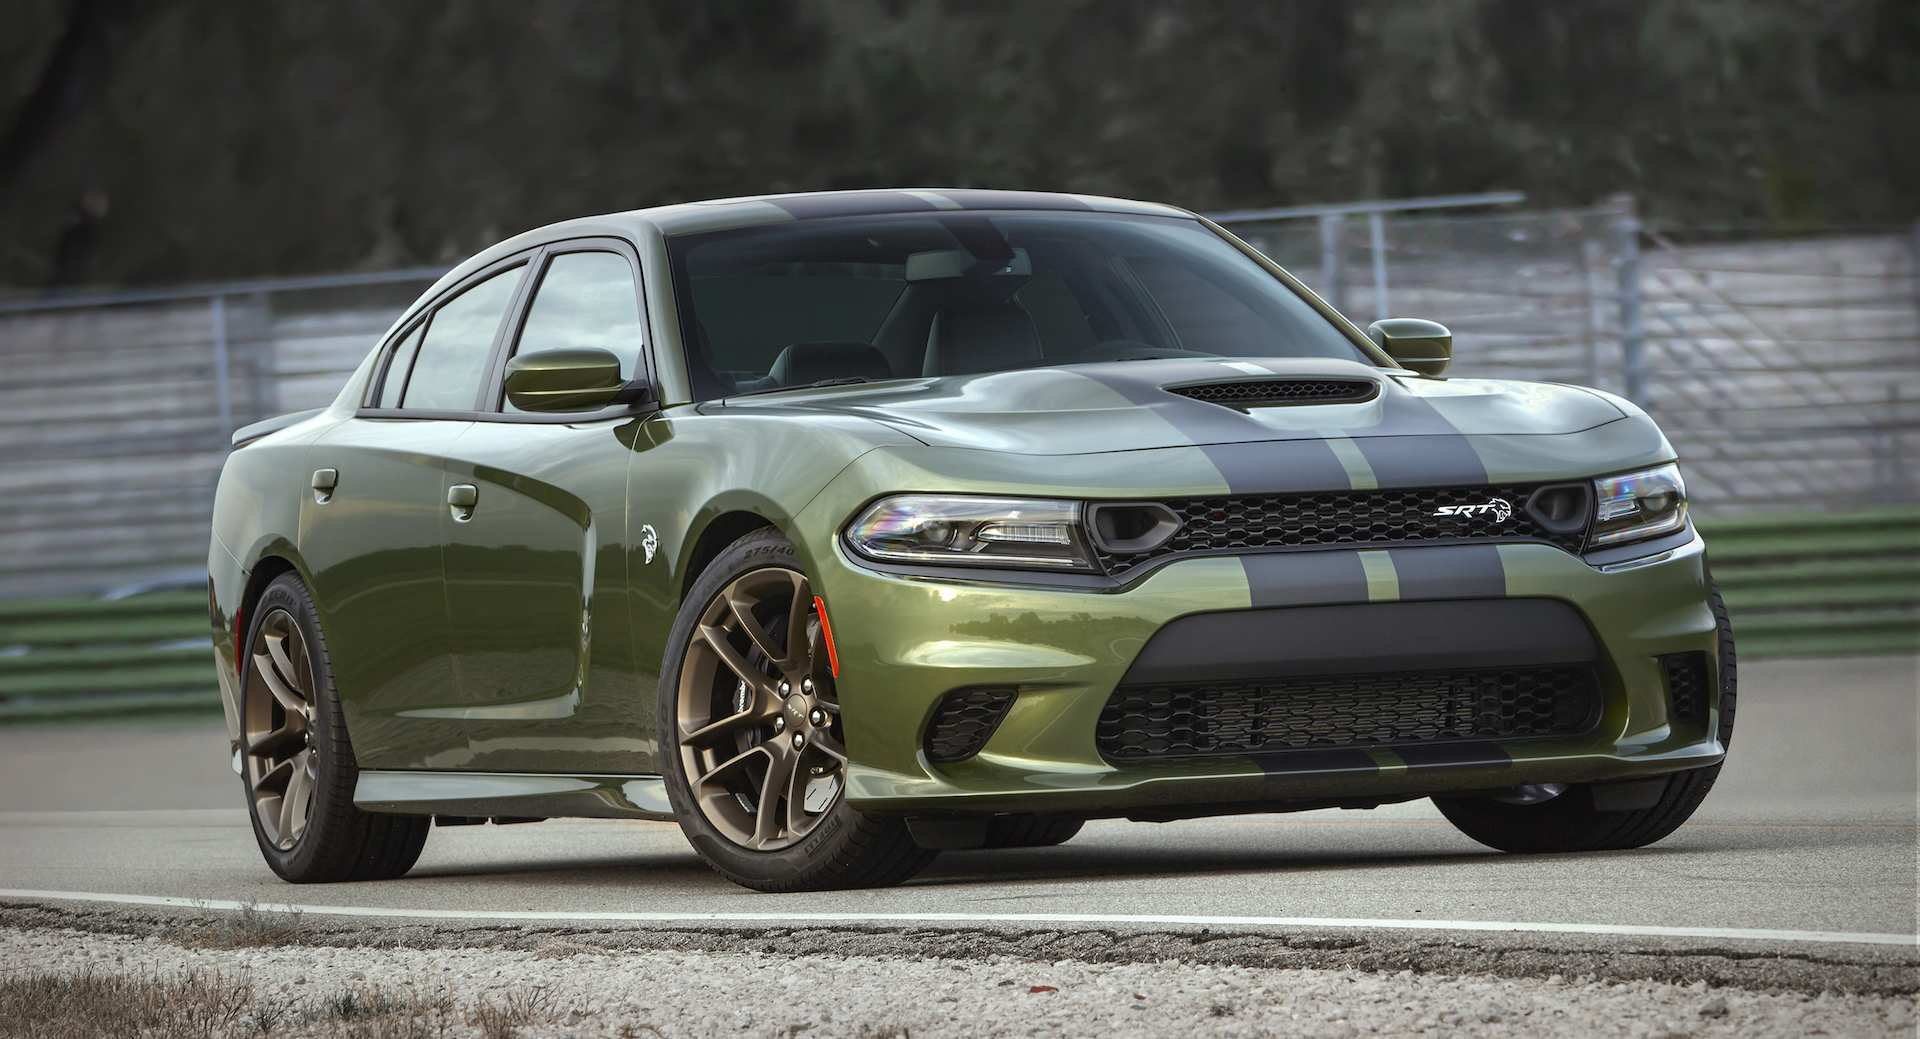 16 The Best 2019 Dodge Charger Srt8 Hellcat Specs And Review